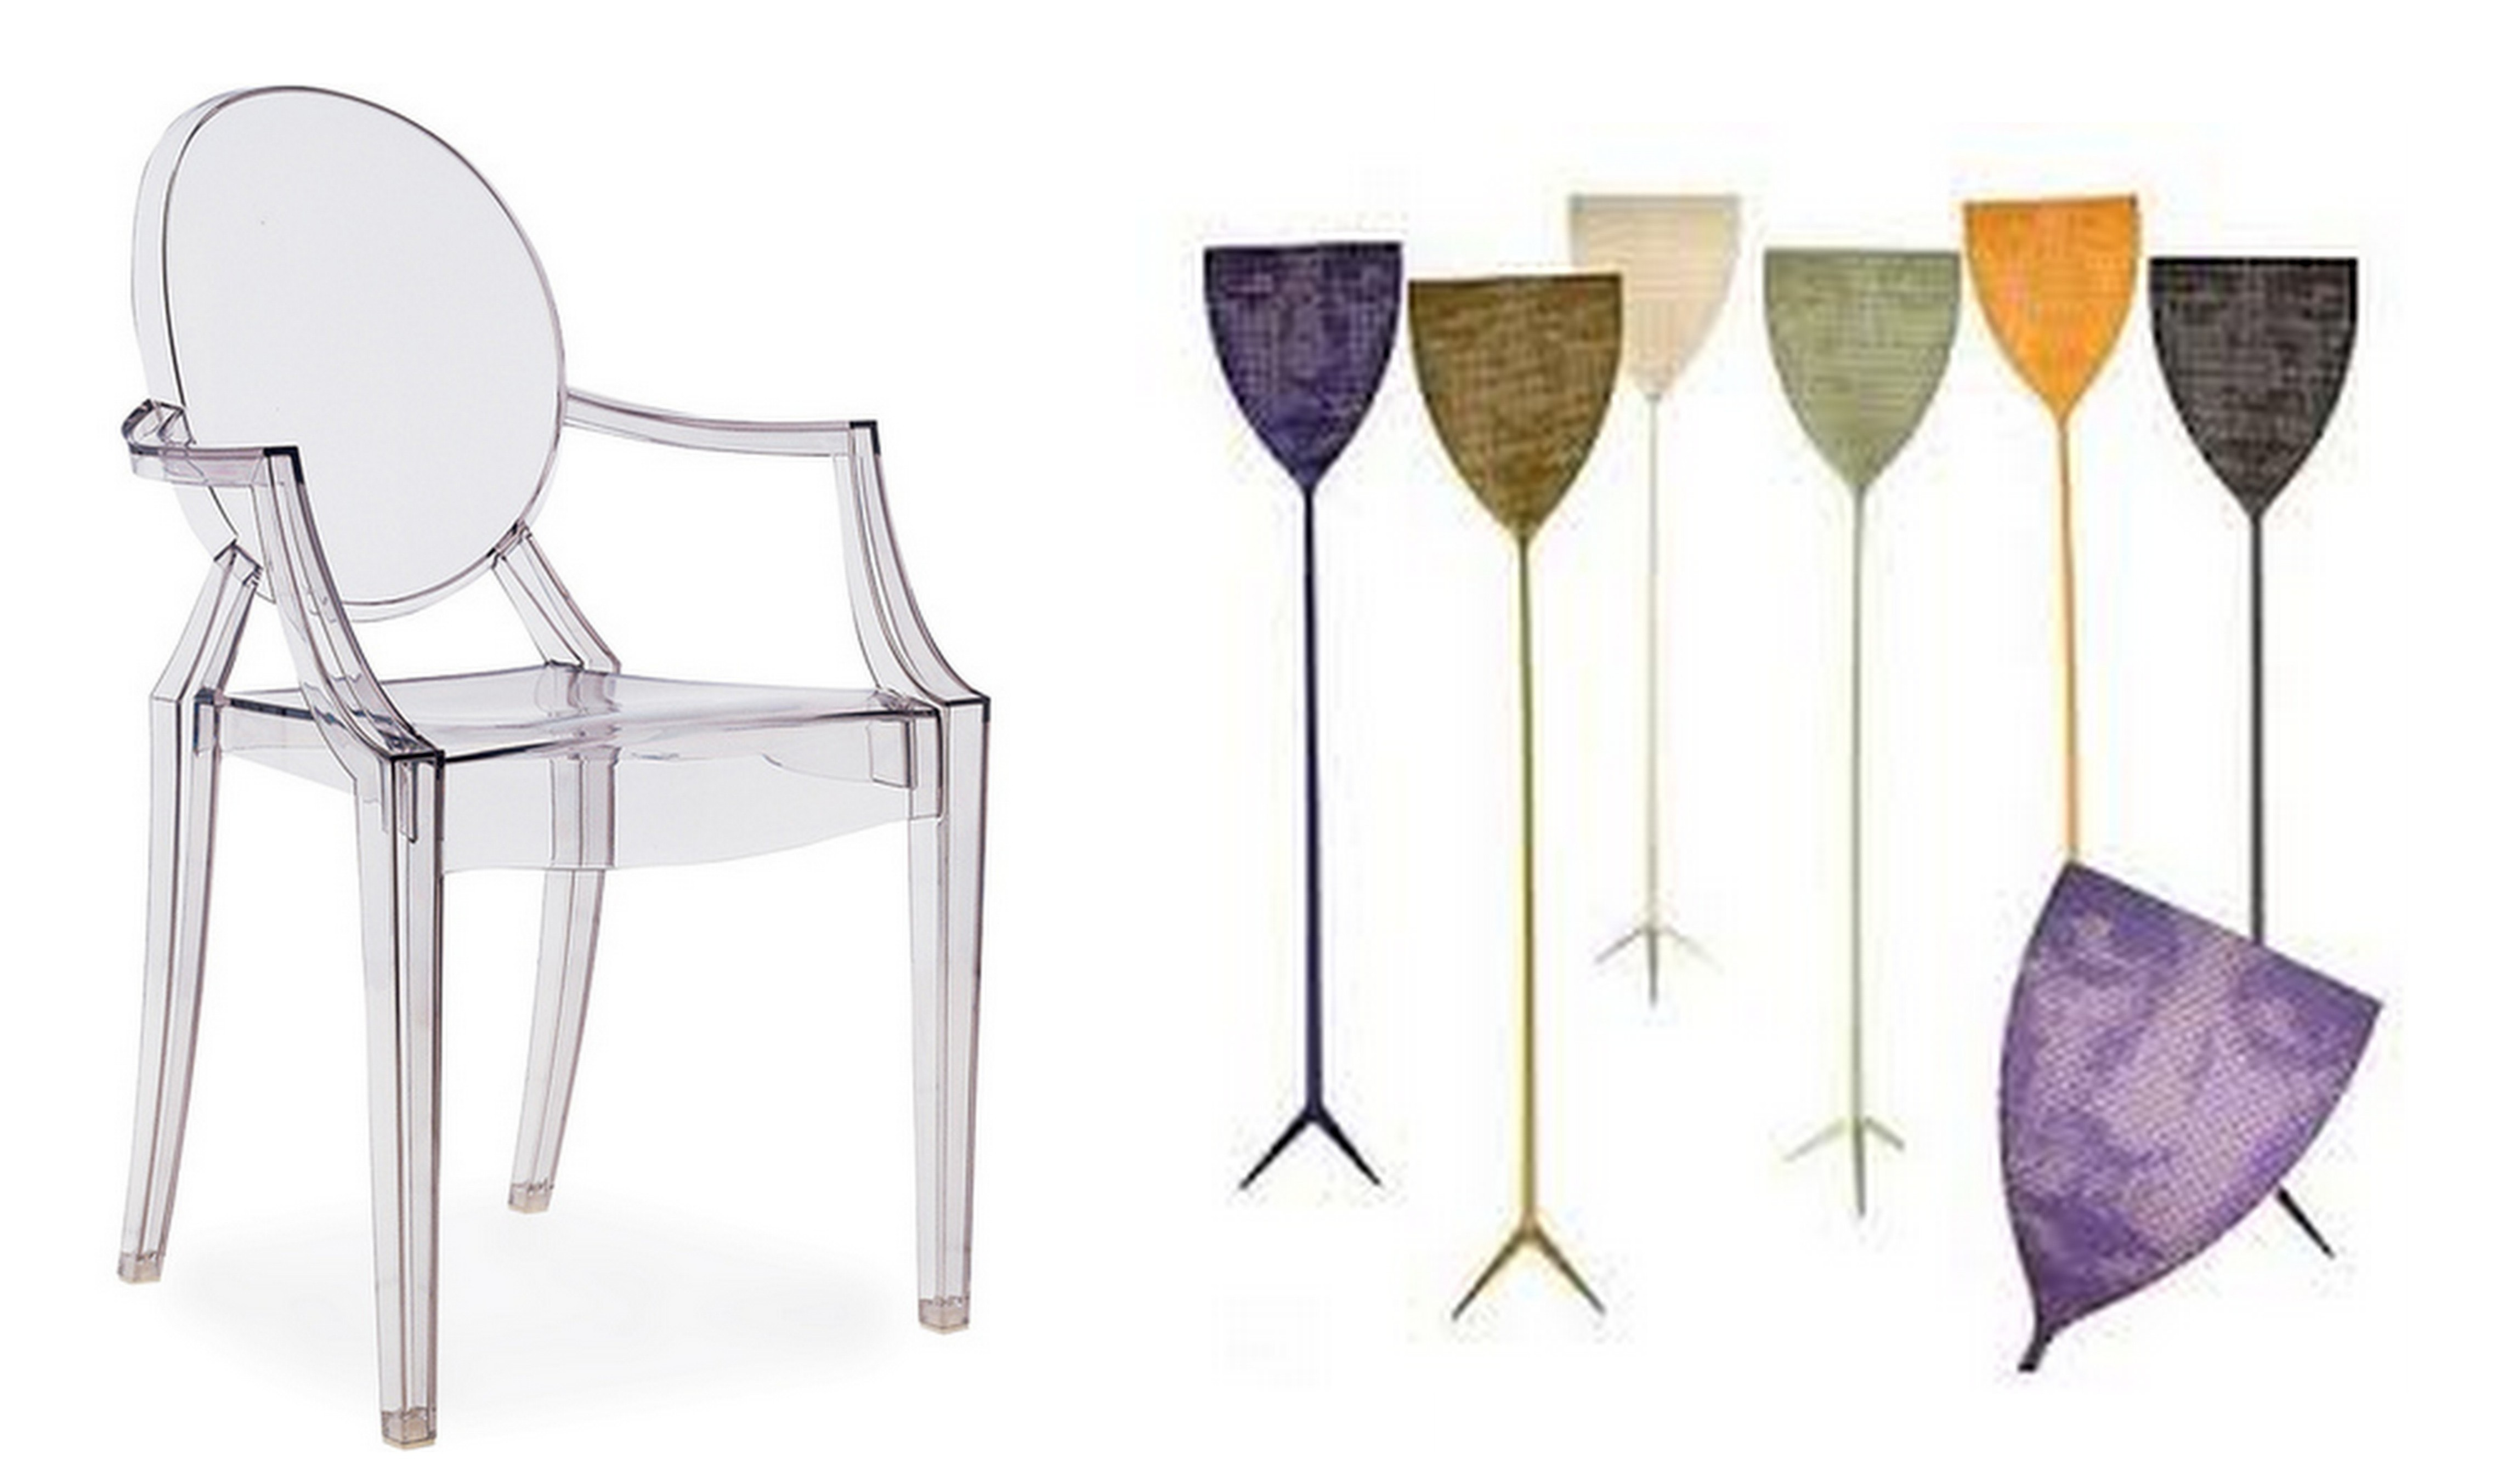 ghost chair knock off eurotech mesh mid back designer home decor save and splurge huffpost